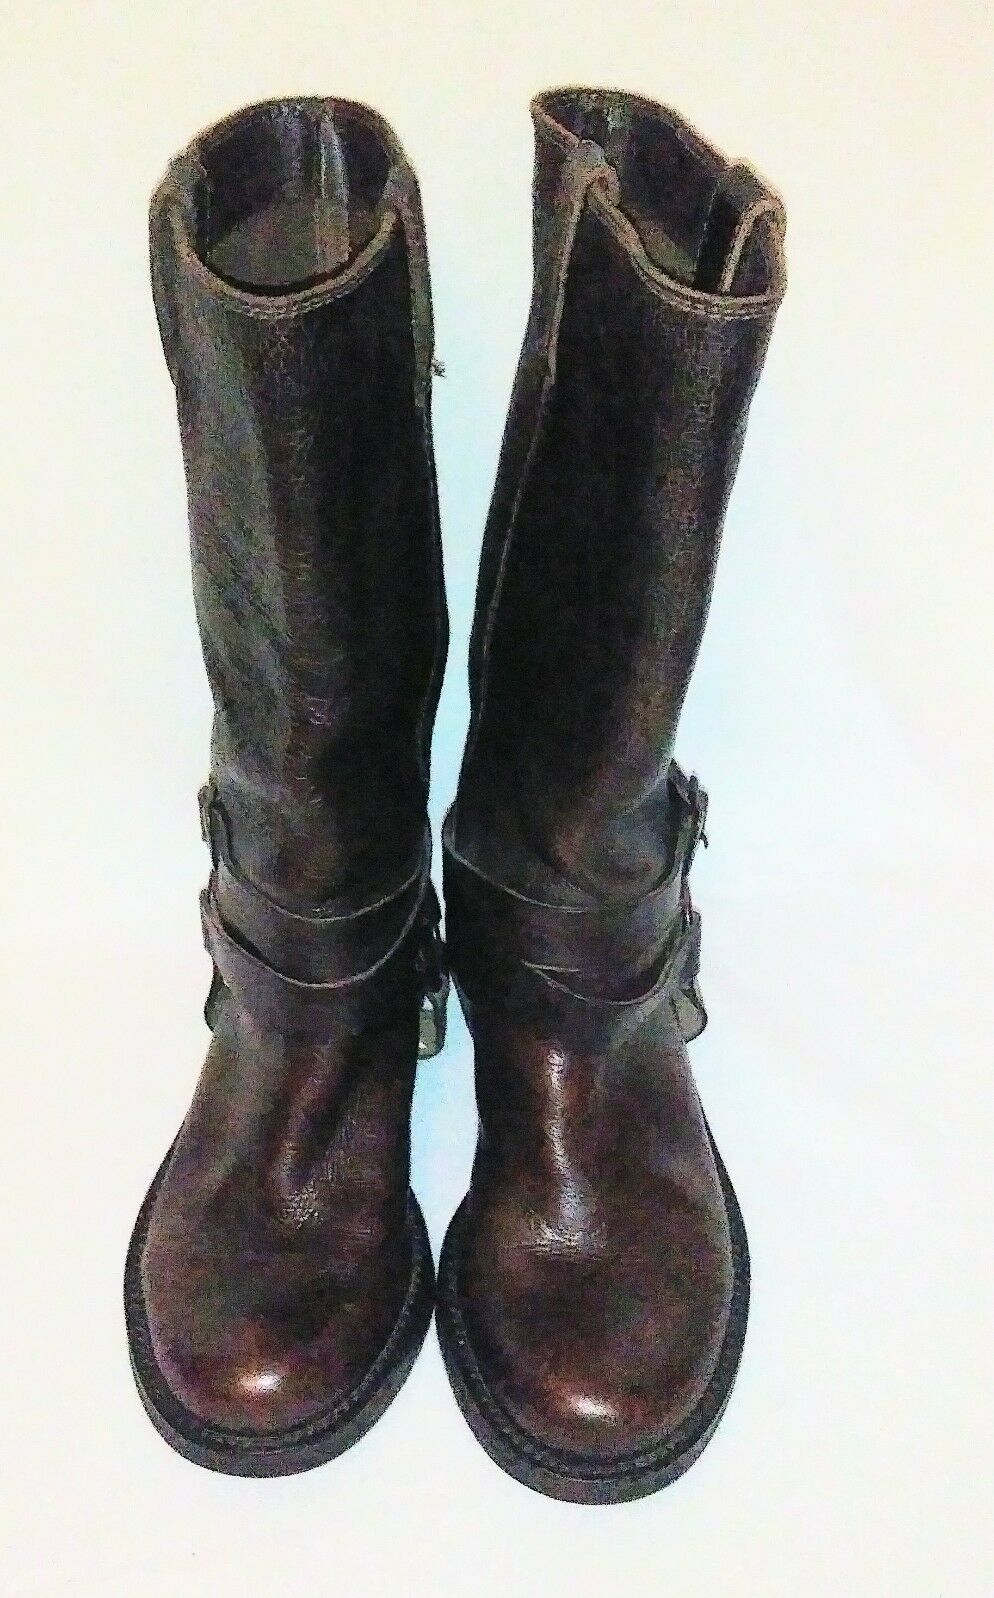 MIA OILED LEATHER DISTRESSED BOOTS SIZE 6.5 NICE BIKER RIDING BROWN